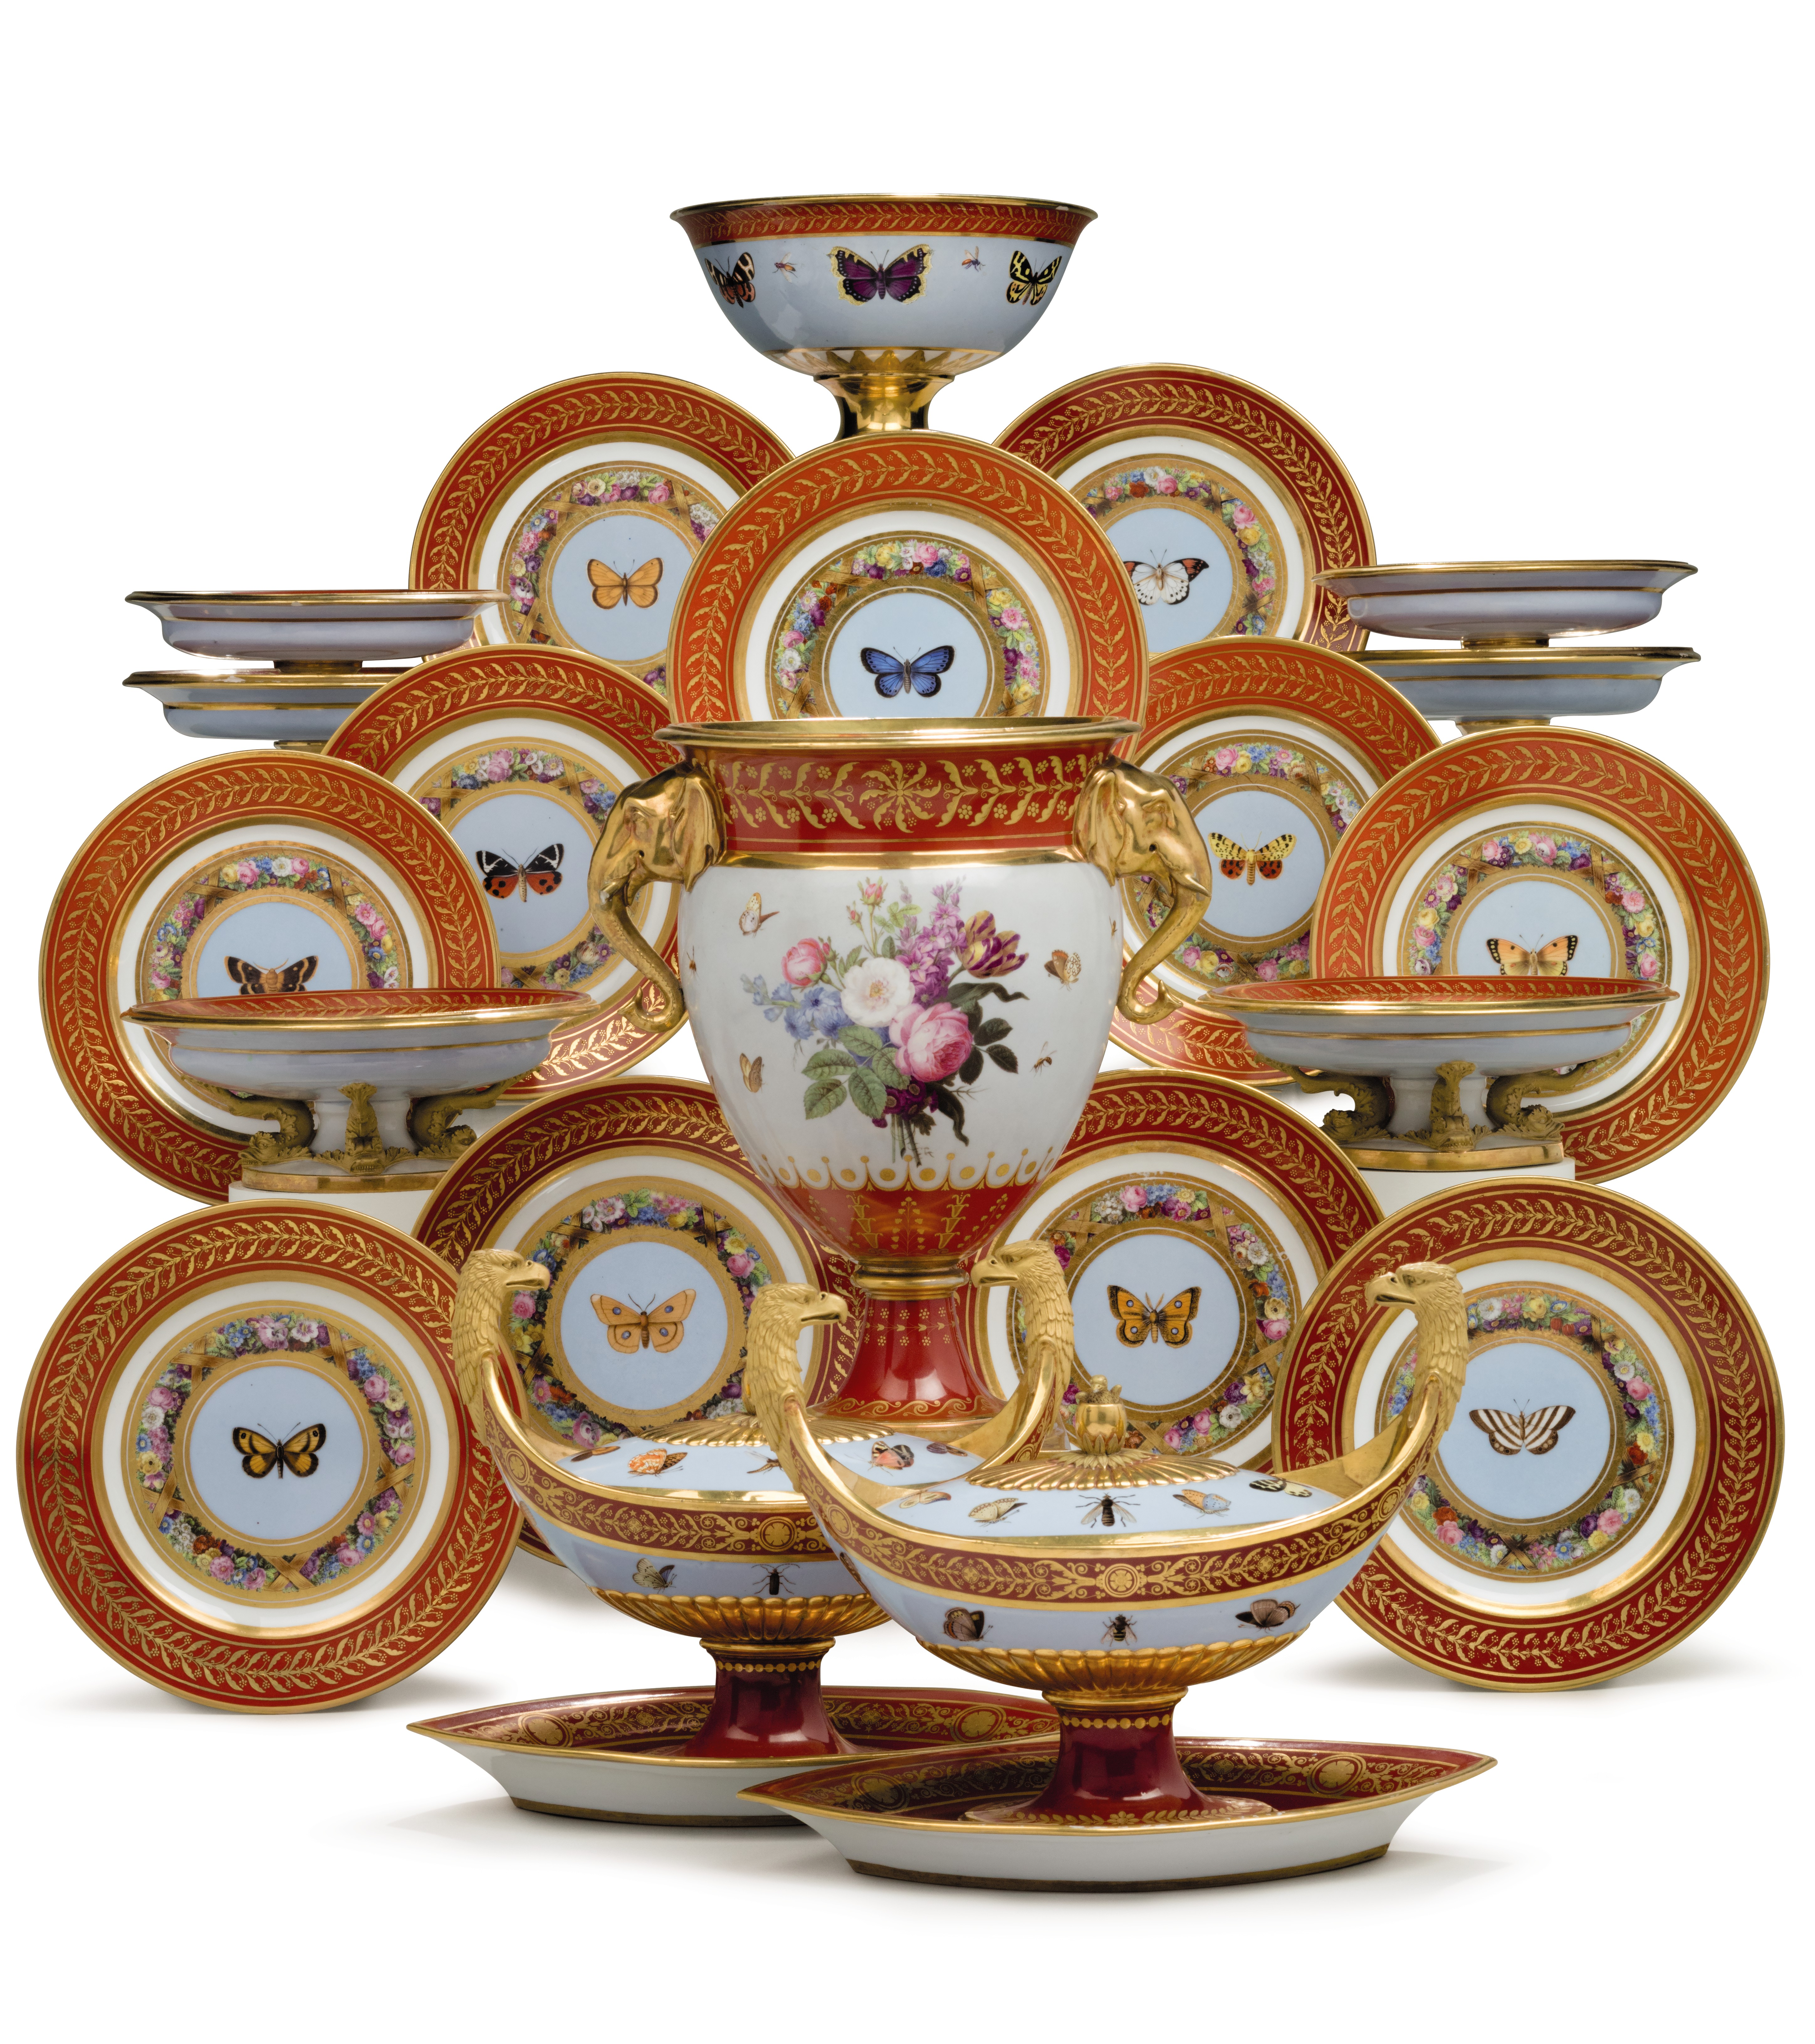 THE 'MARLY ROUGE' SERVICE: A SEVRES PORCELAIN IRON-RED AND SKY-BLUE GROUND PART DESSERT SERVICE MADE FOR NAPOLEON I